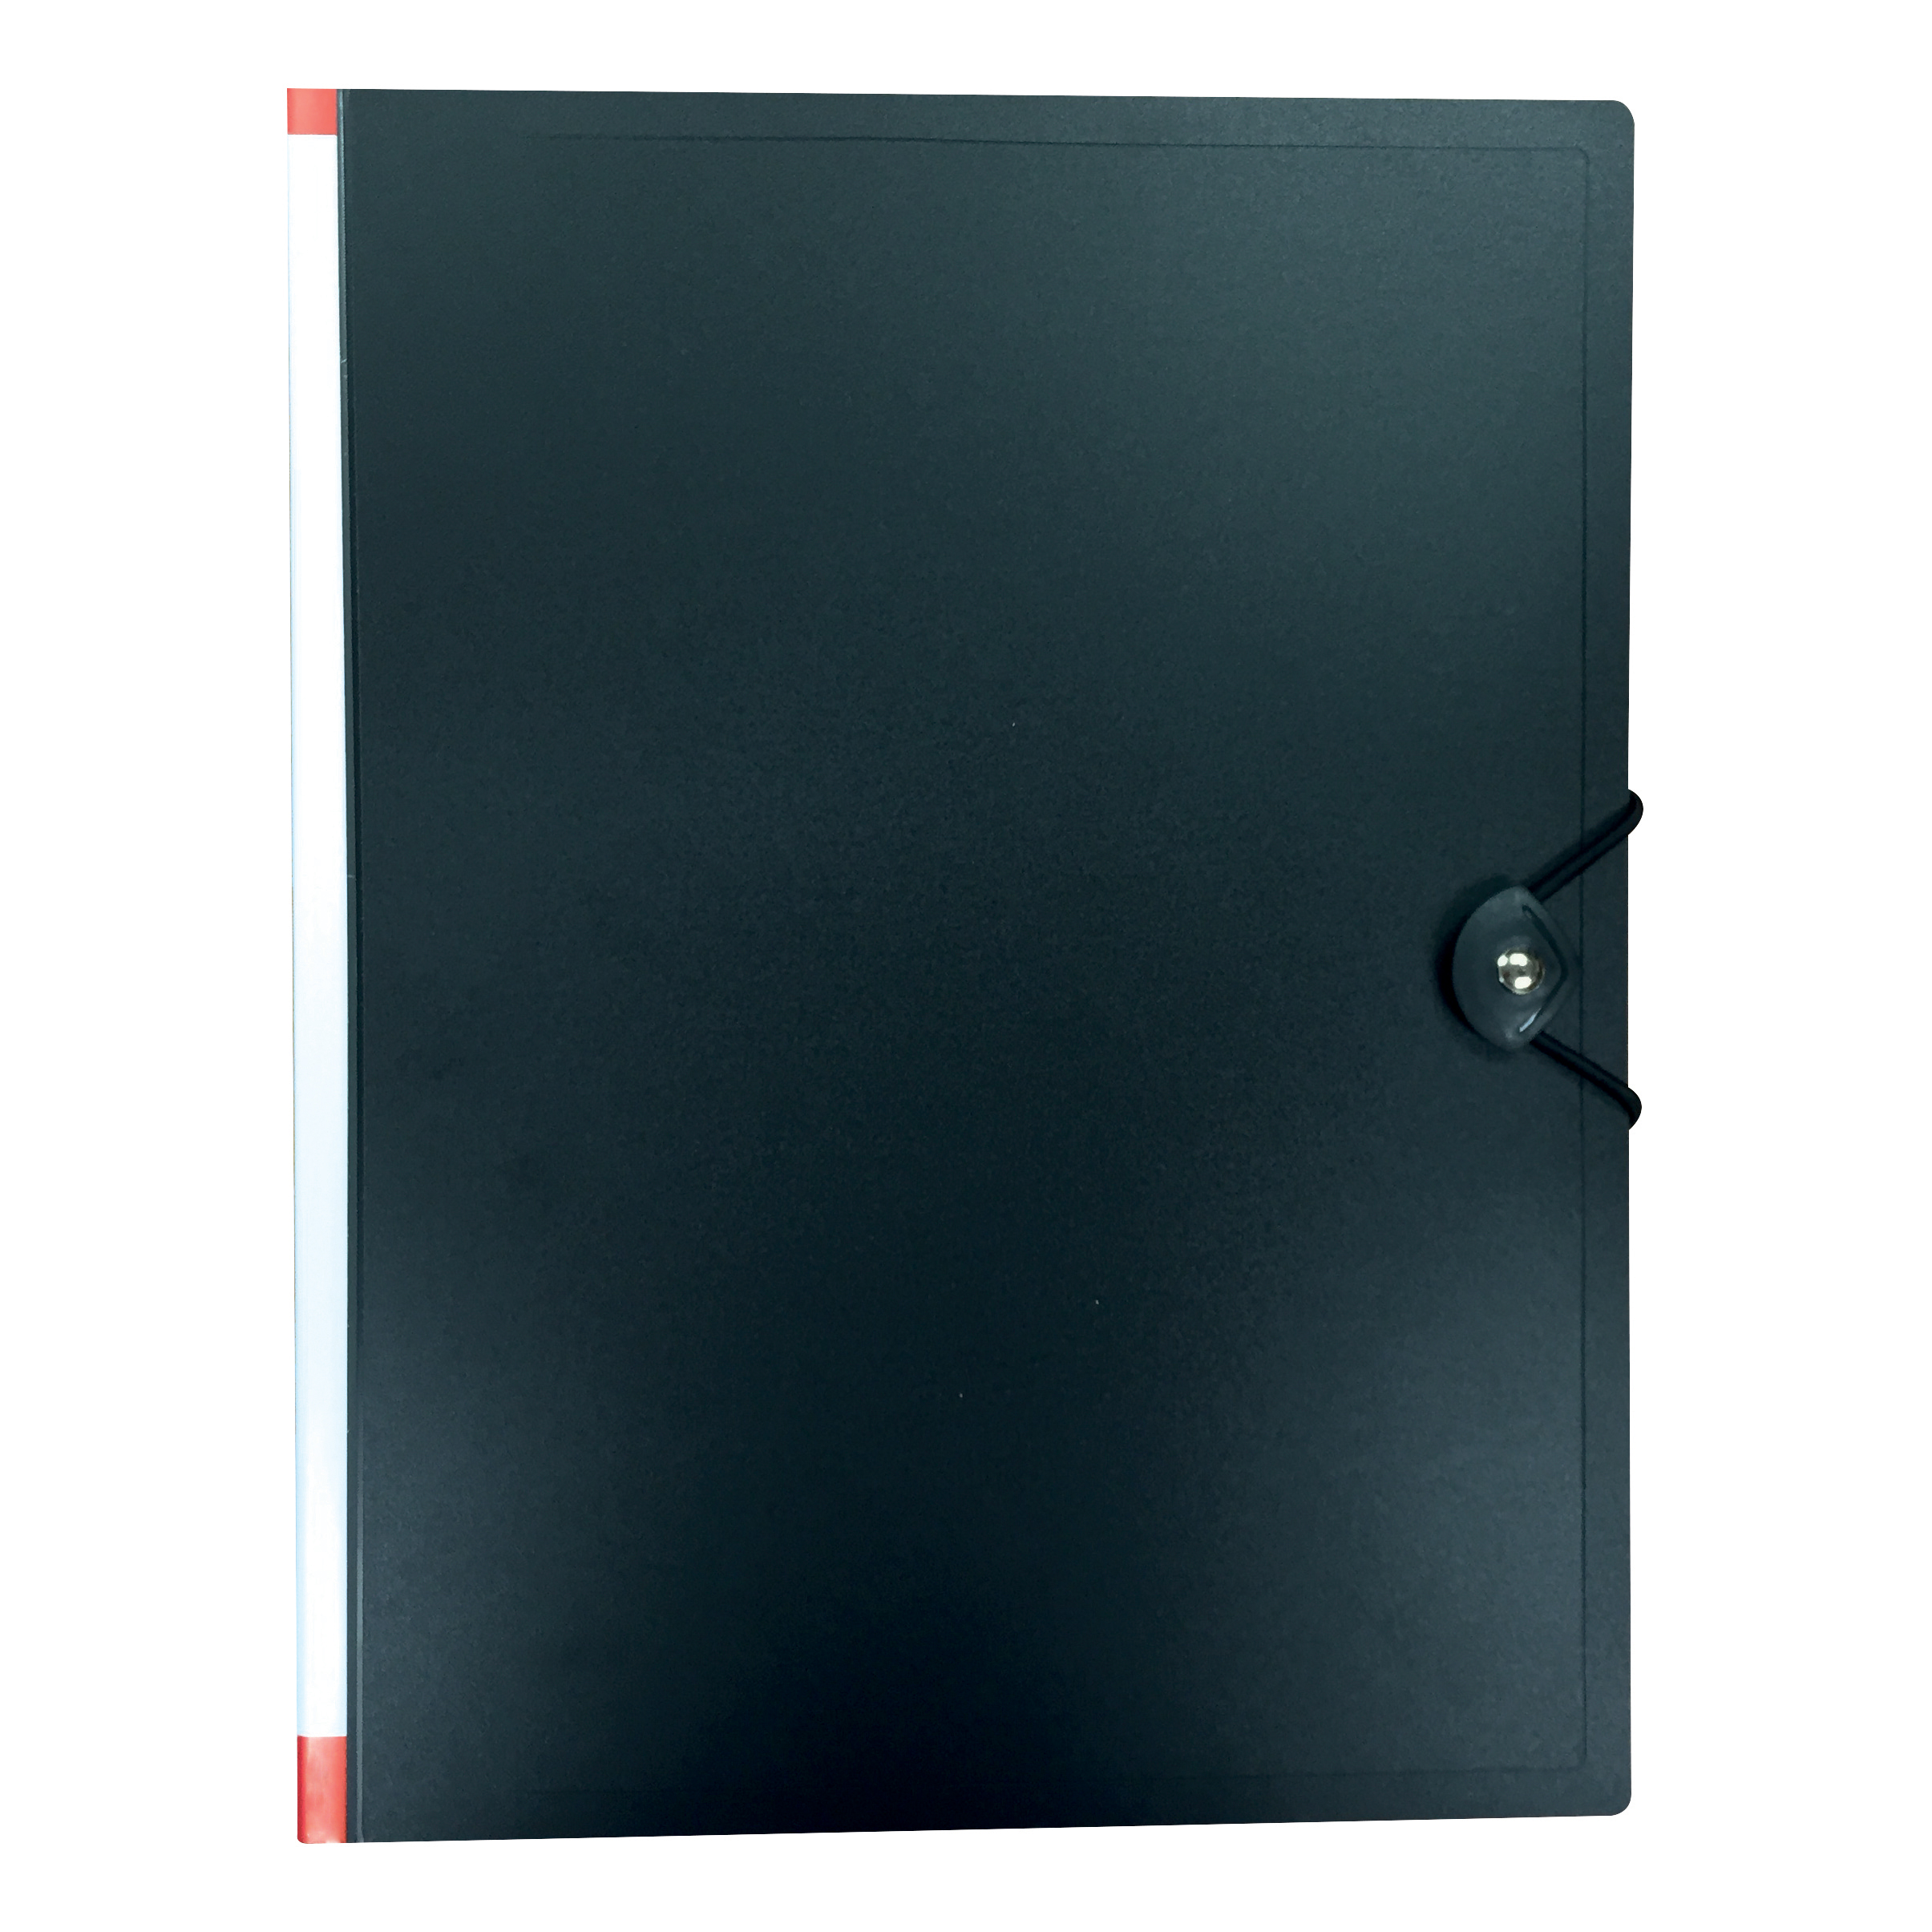 Display Books 5 Star Office Display Book Hardback Cover Polypropylene 50 Pockets A4 Black